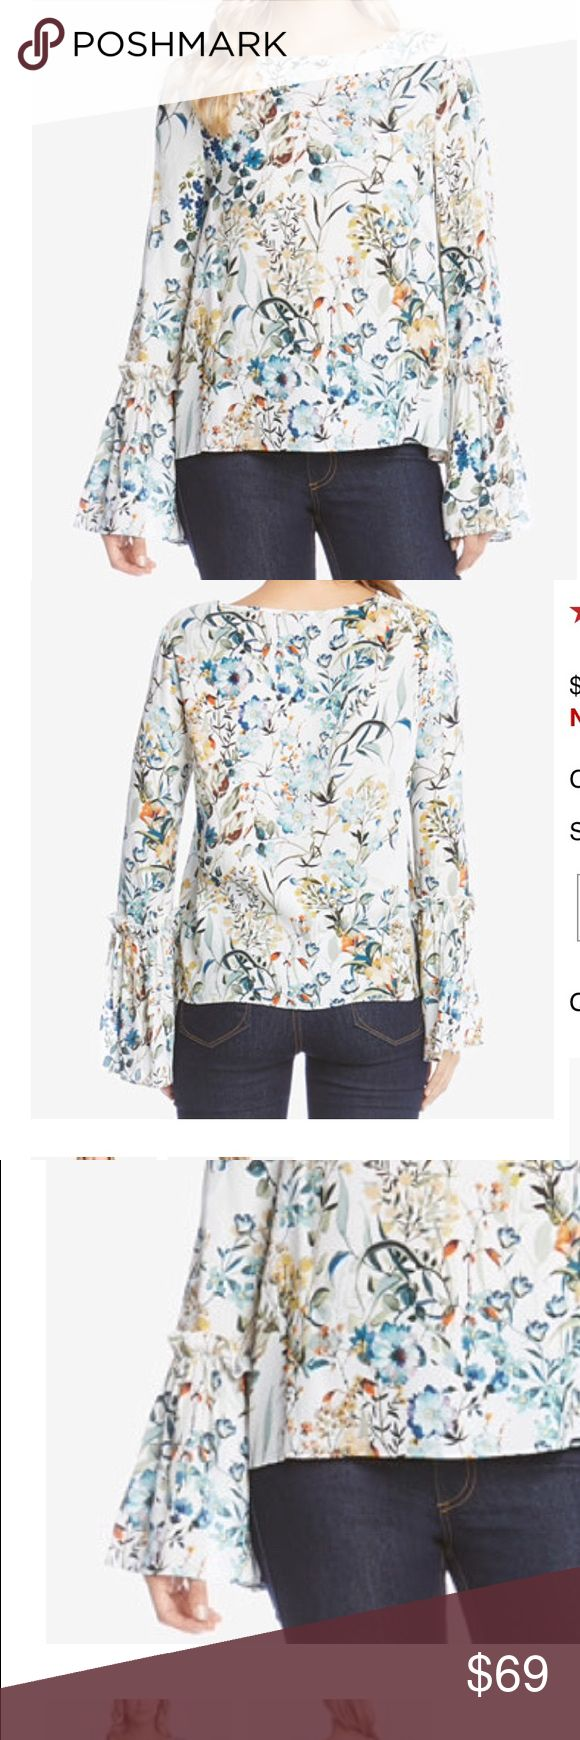 """NWT KAREN KANE PRINTED BELL SLEEVE TOP Bell sleeves is a right now look when wear this lovely top. Tie detail and ruffled trim accentuate the bell flare for a pretty finish. Boat neckline  Long bell sleeves, ruffle trim at tie detail at cuff. Approx 23""""length  Viscose dry clean. Karen Kane Tops Blouses"""